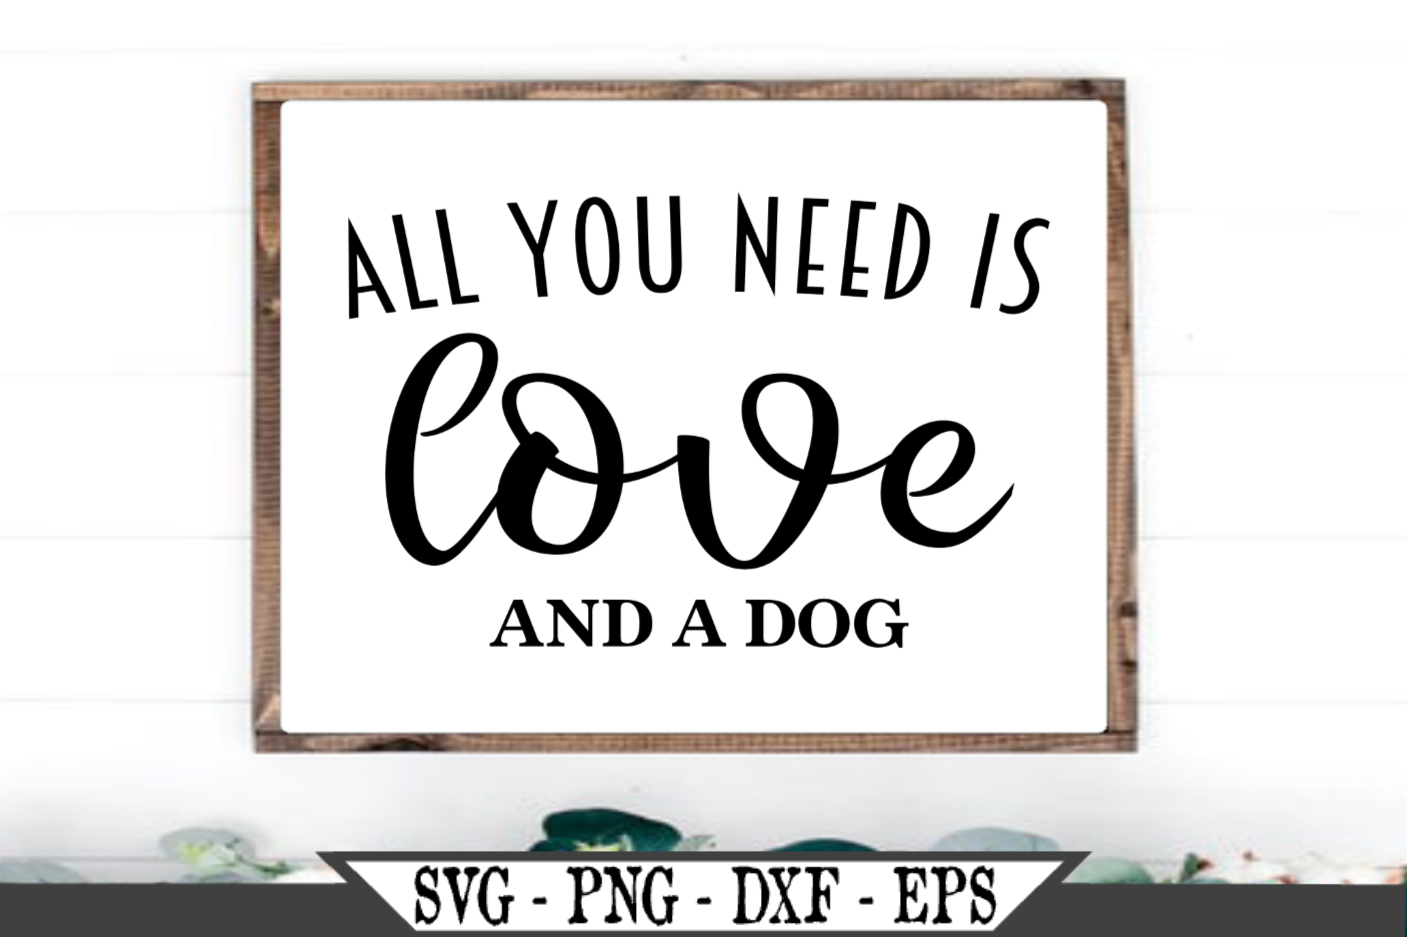 All You Need Is Love And A Dog SVG example image 1